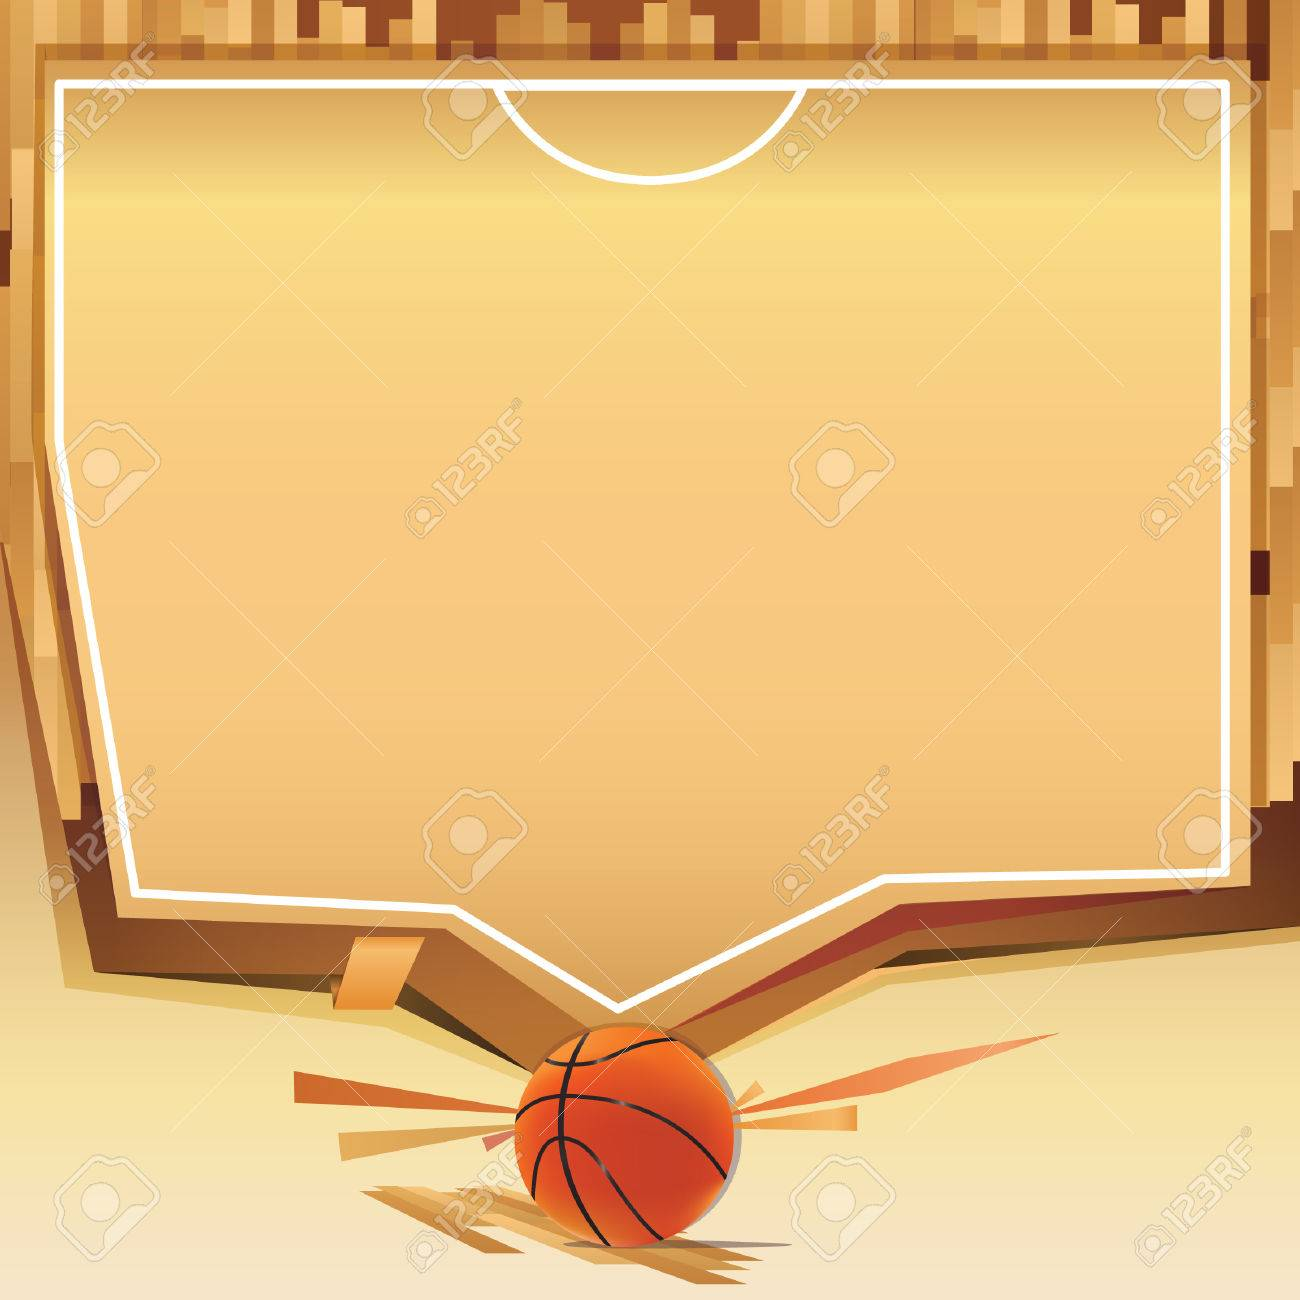 Basketball Court Template Royalty Free Cliparts Vectors And Stock